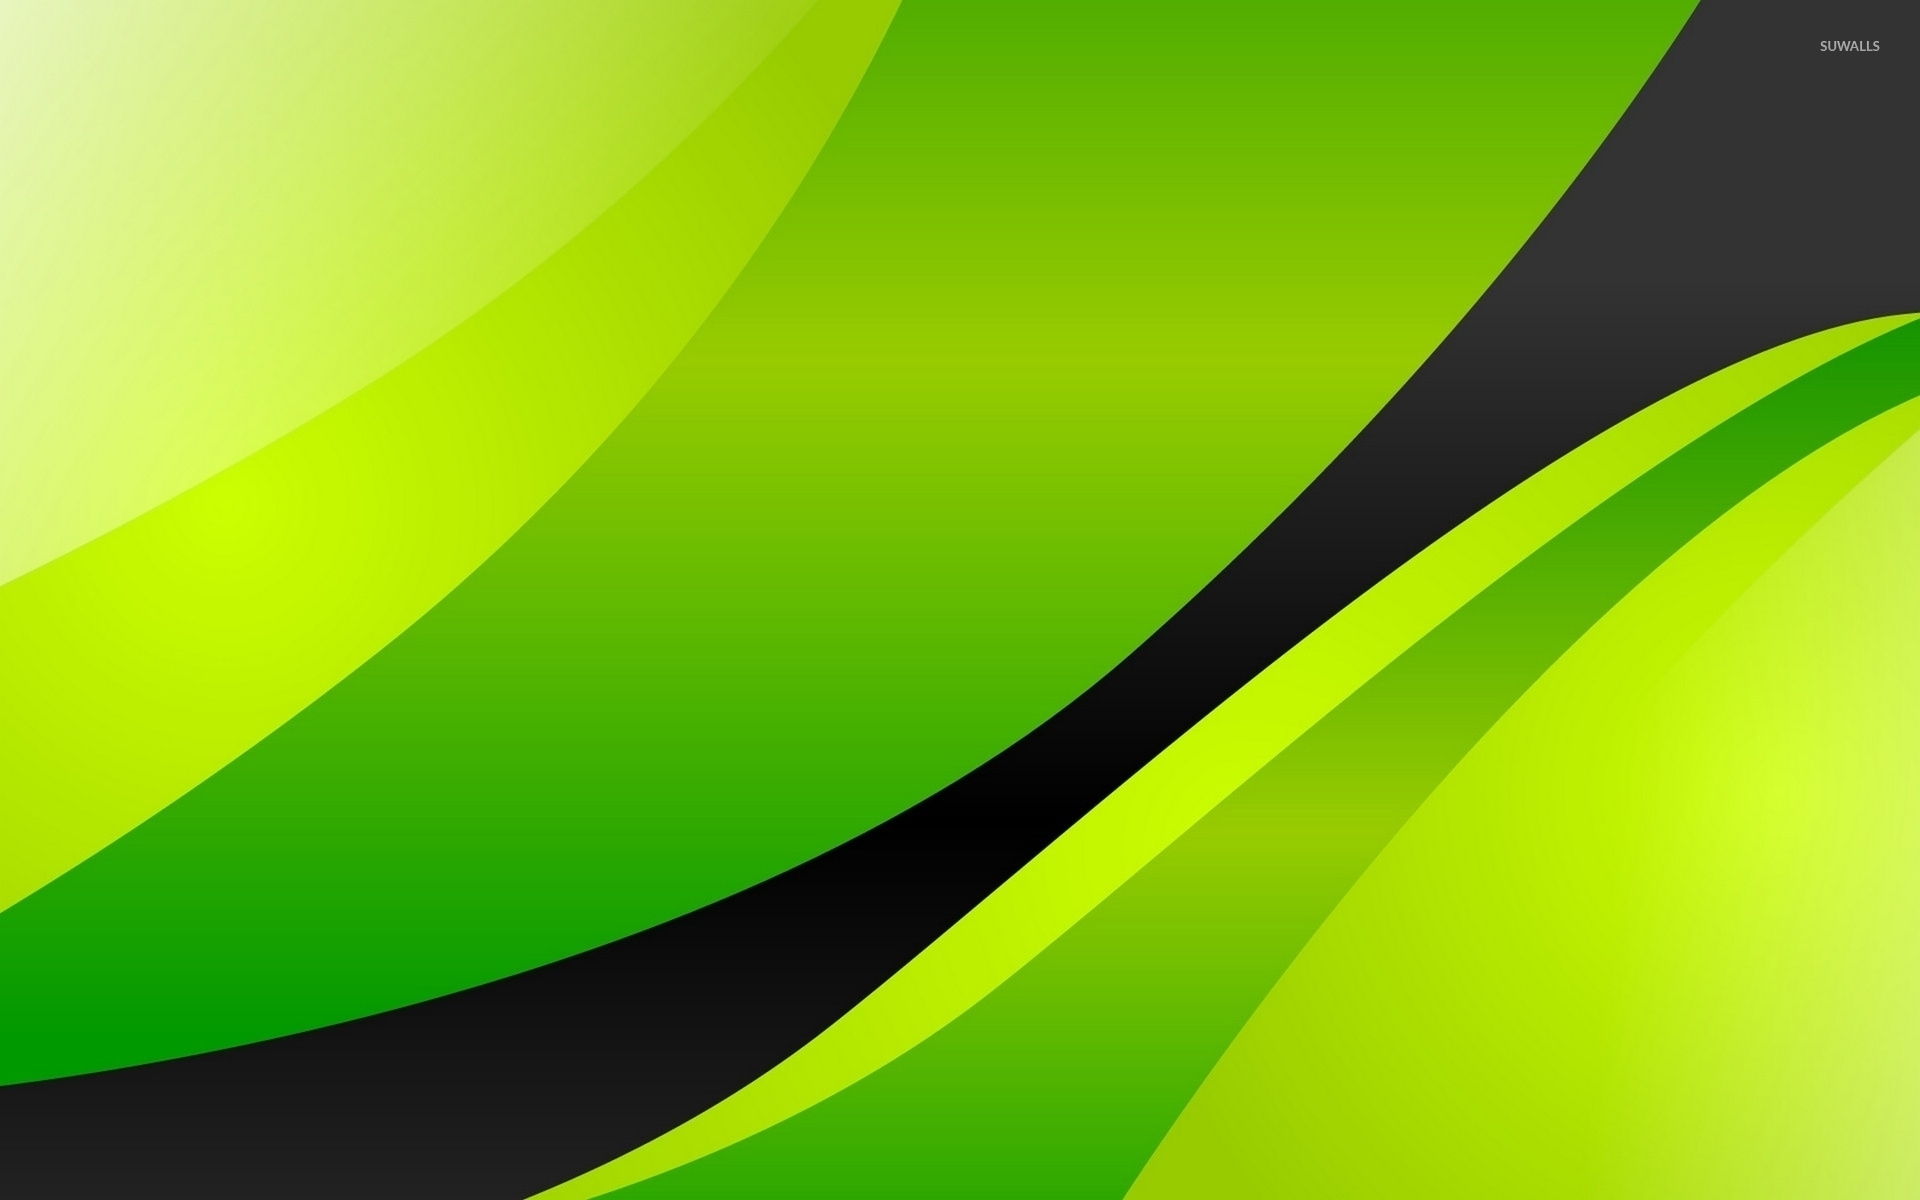 Blue Yellow 3d Hd Abstract Wallpaper Download Green Black And White Striped Wallpaper Gallery